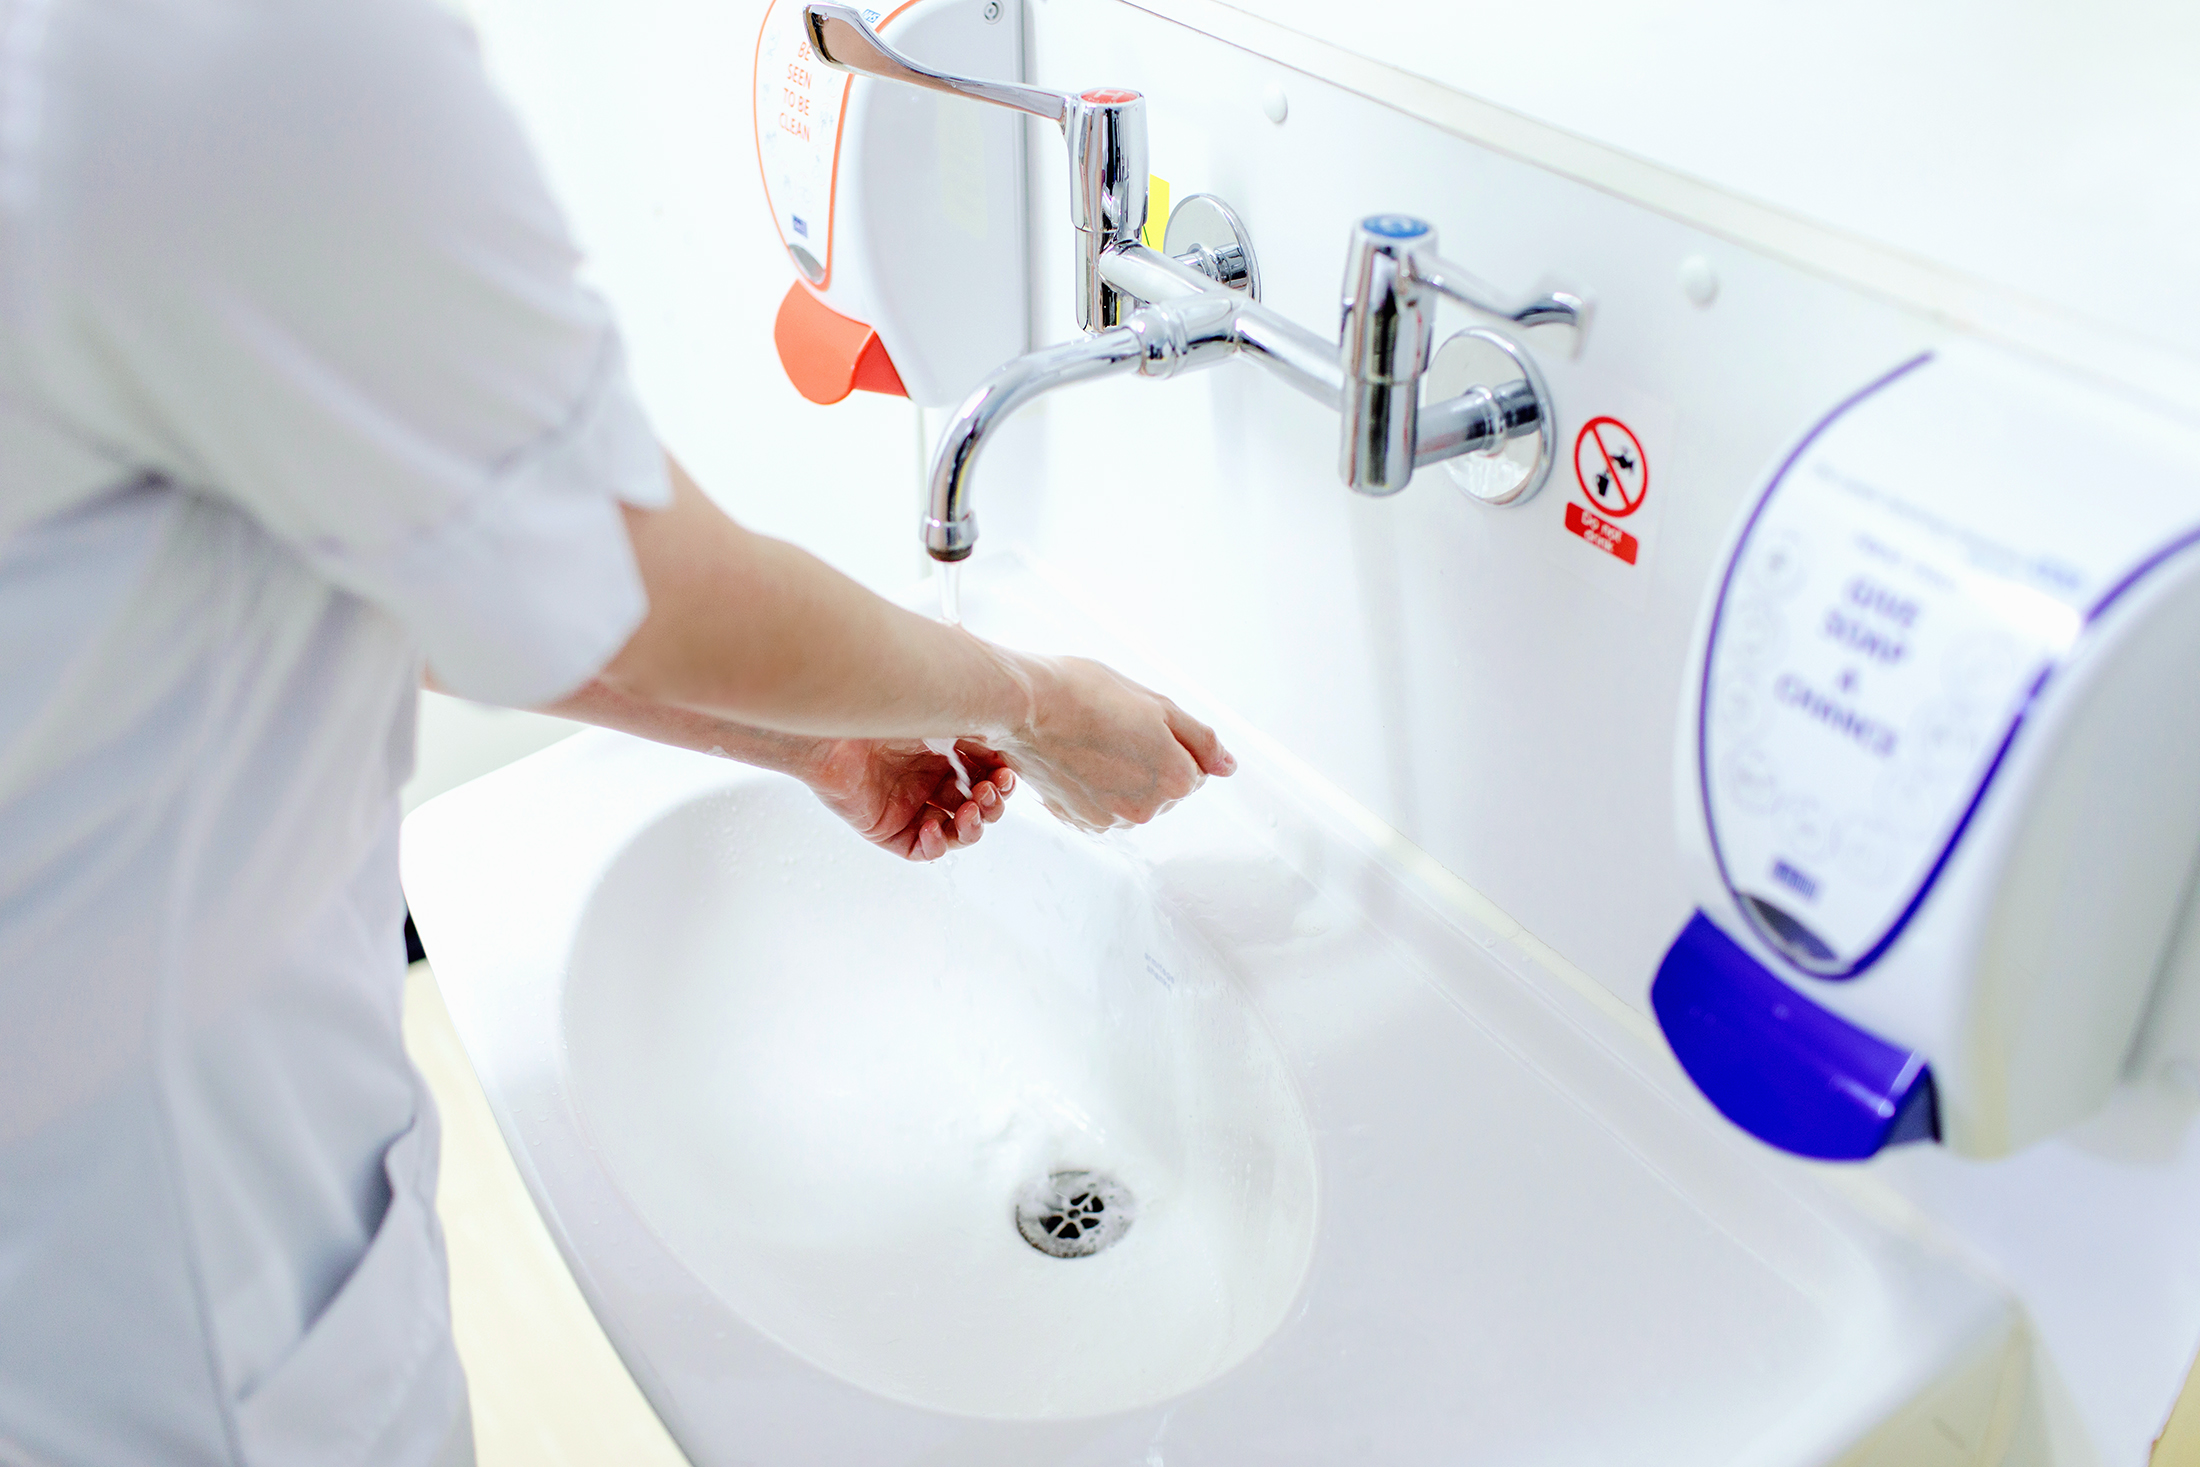 A student nurse washing her hands. Photograph by Mark Webster